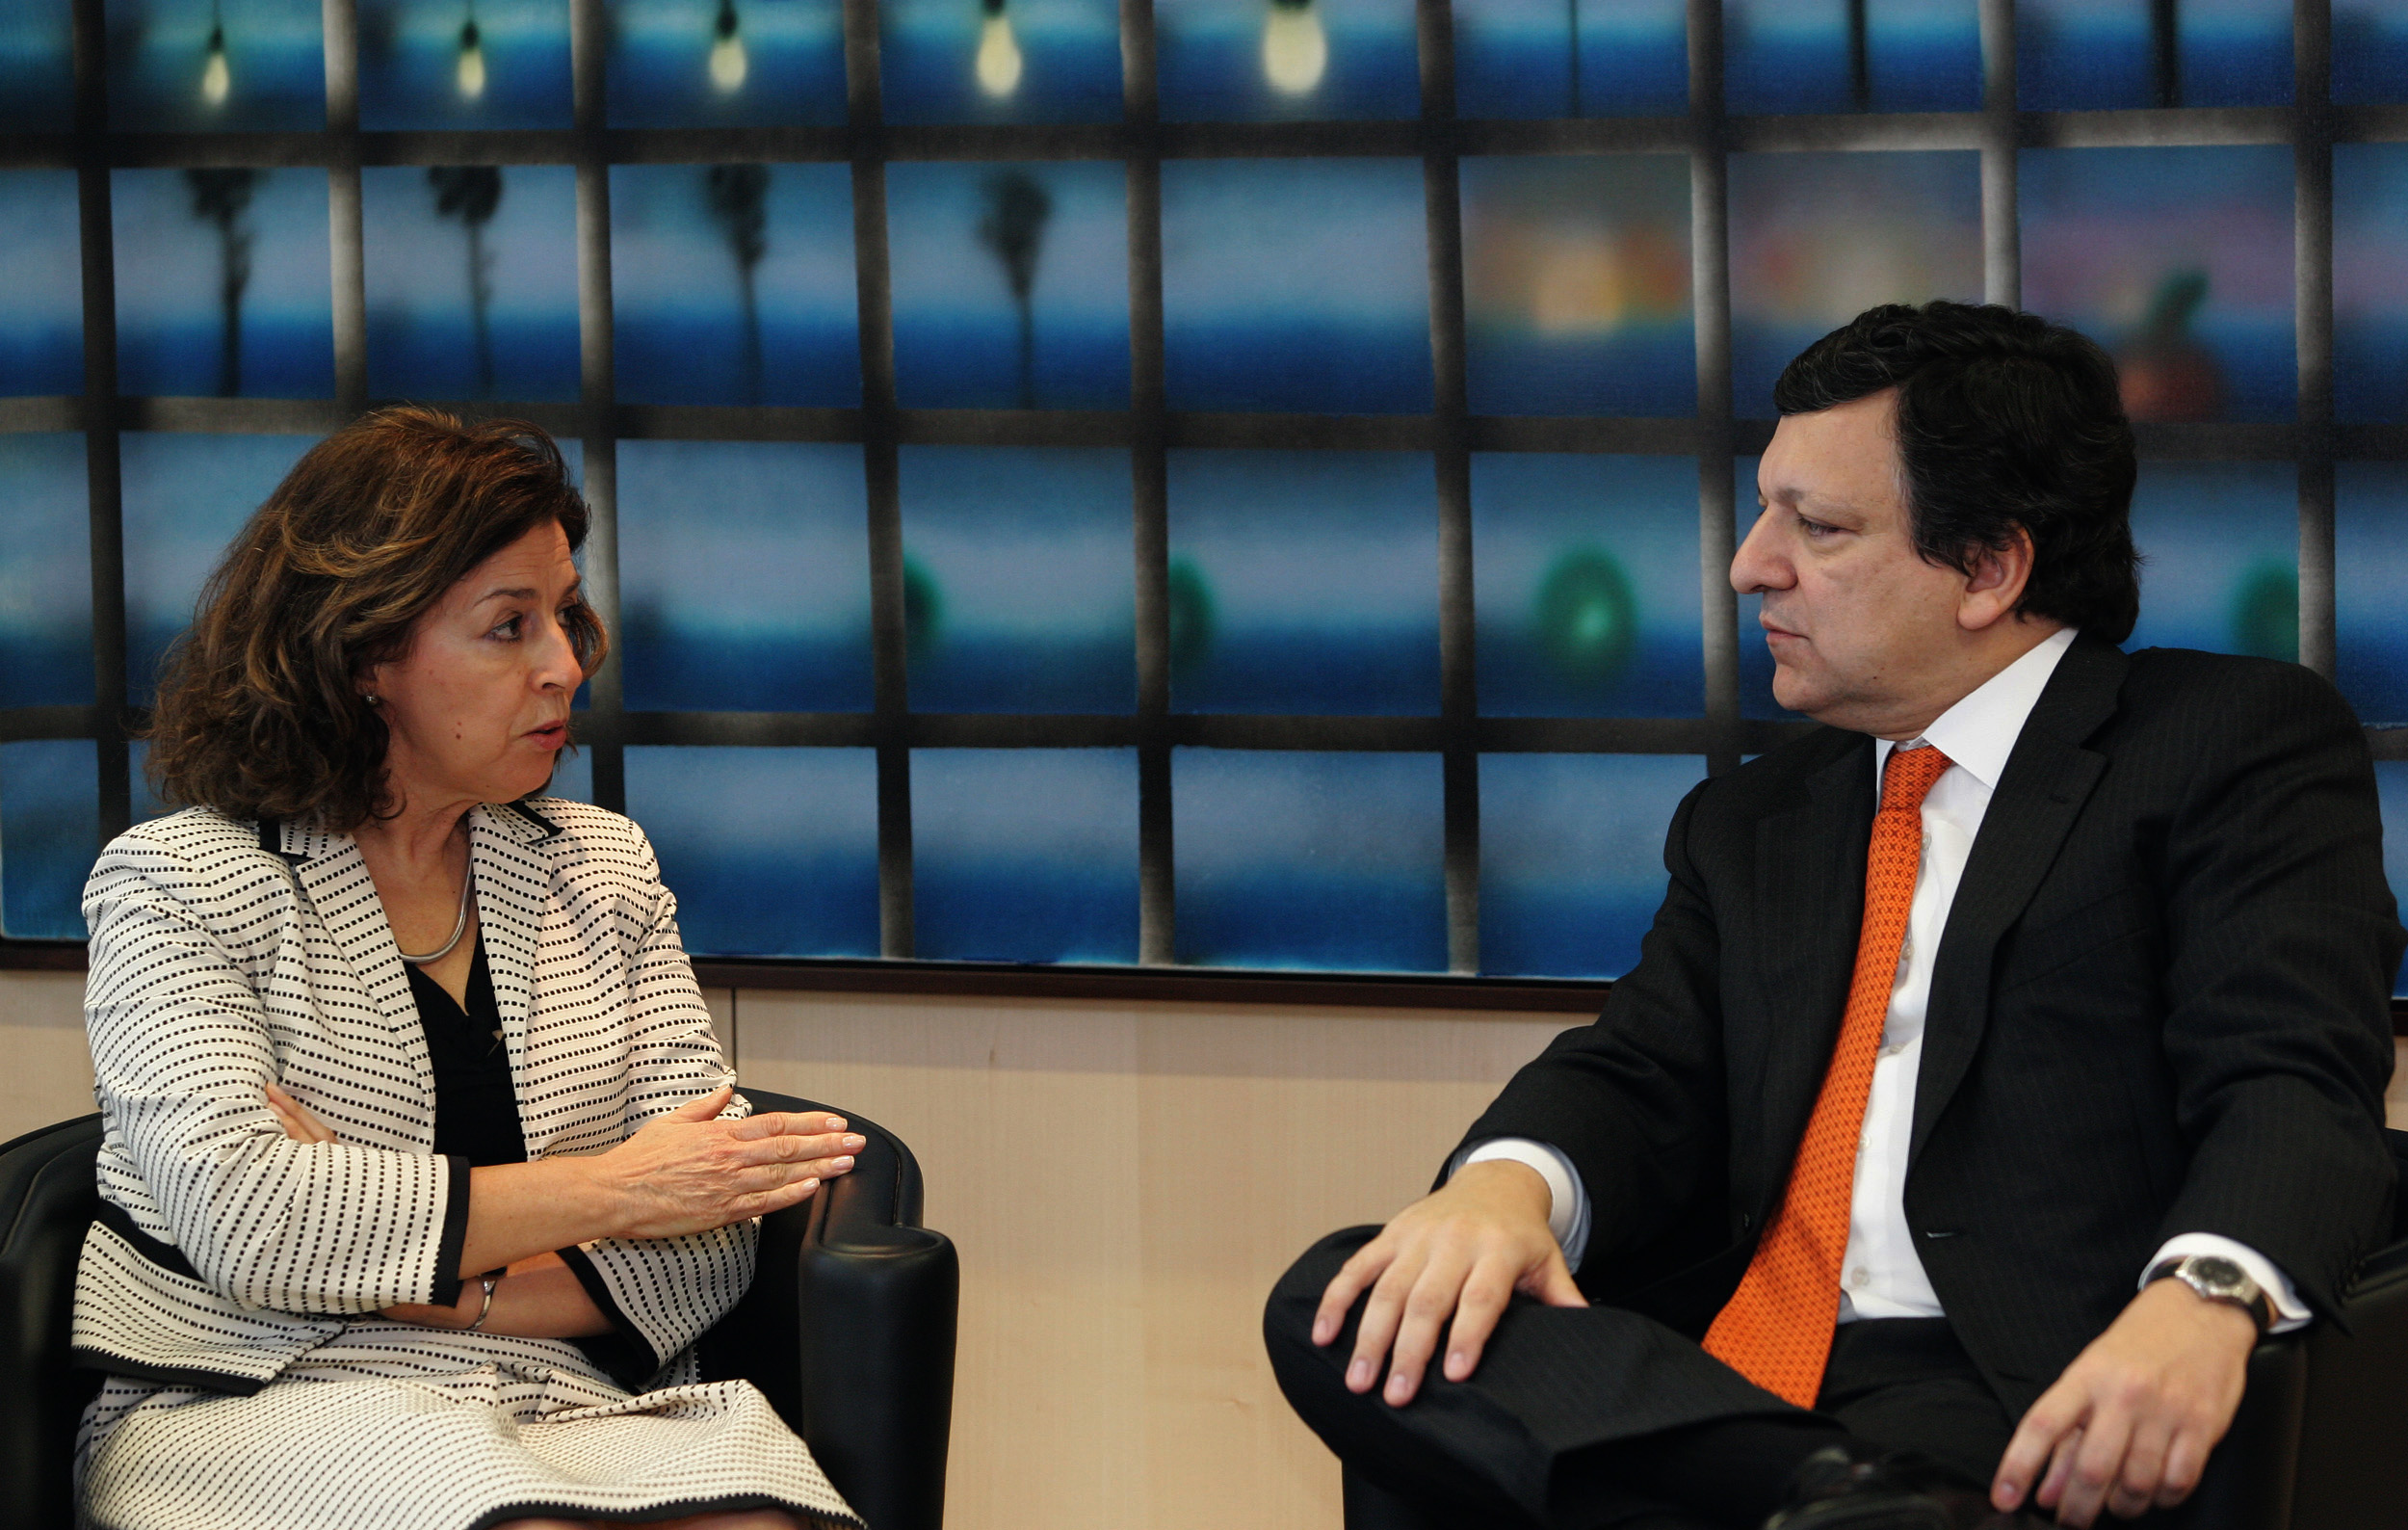 Visit by Leonor Beleza, President of the Foundation Champalimaud, to the EC